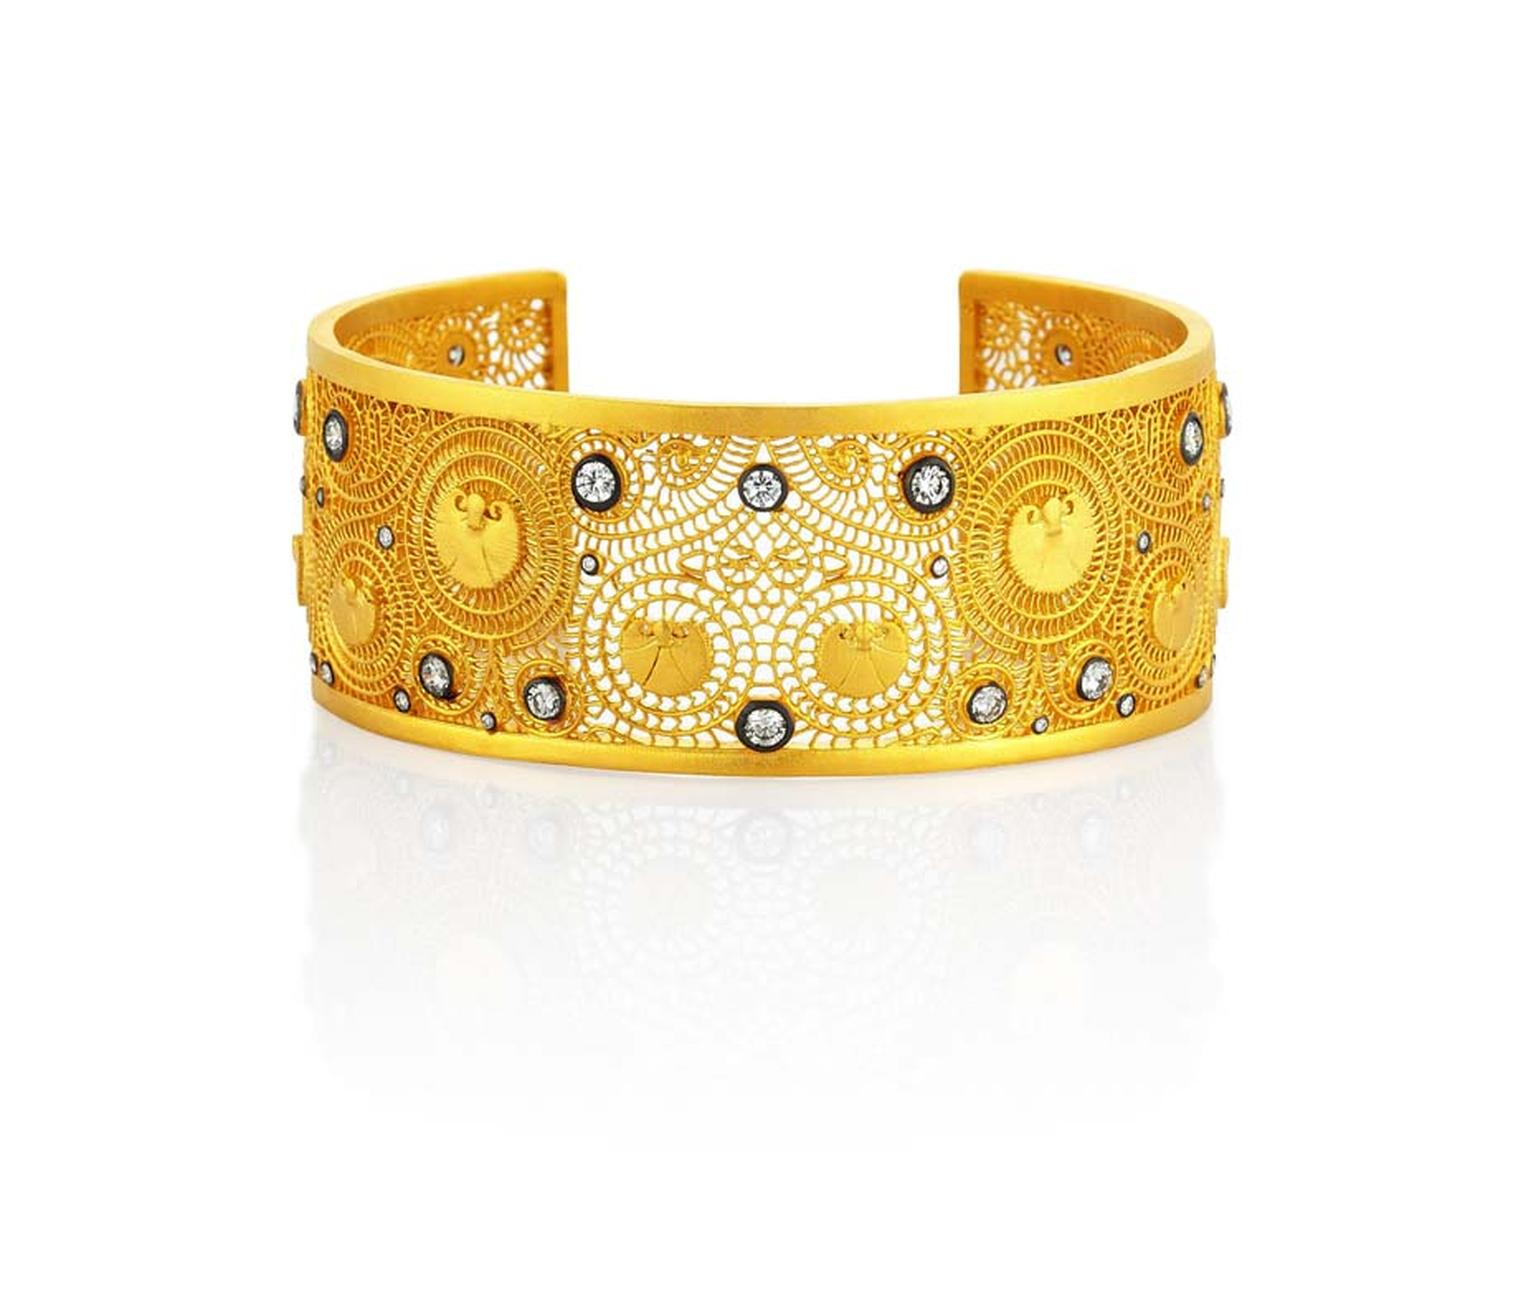 Pinar Oner Agape gold cuff with diamonds.